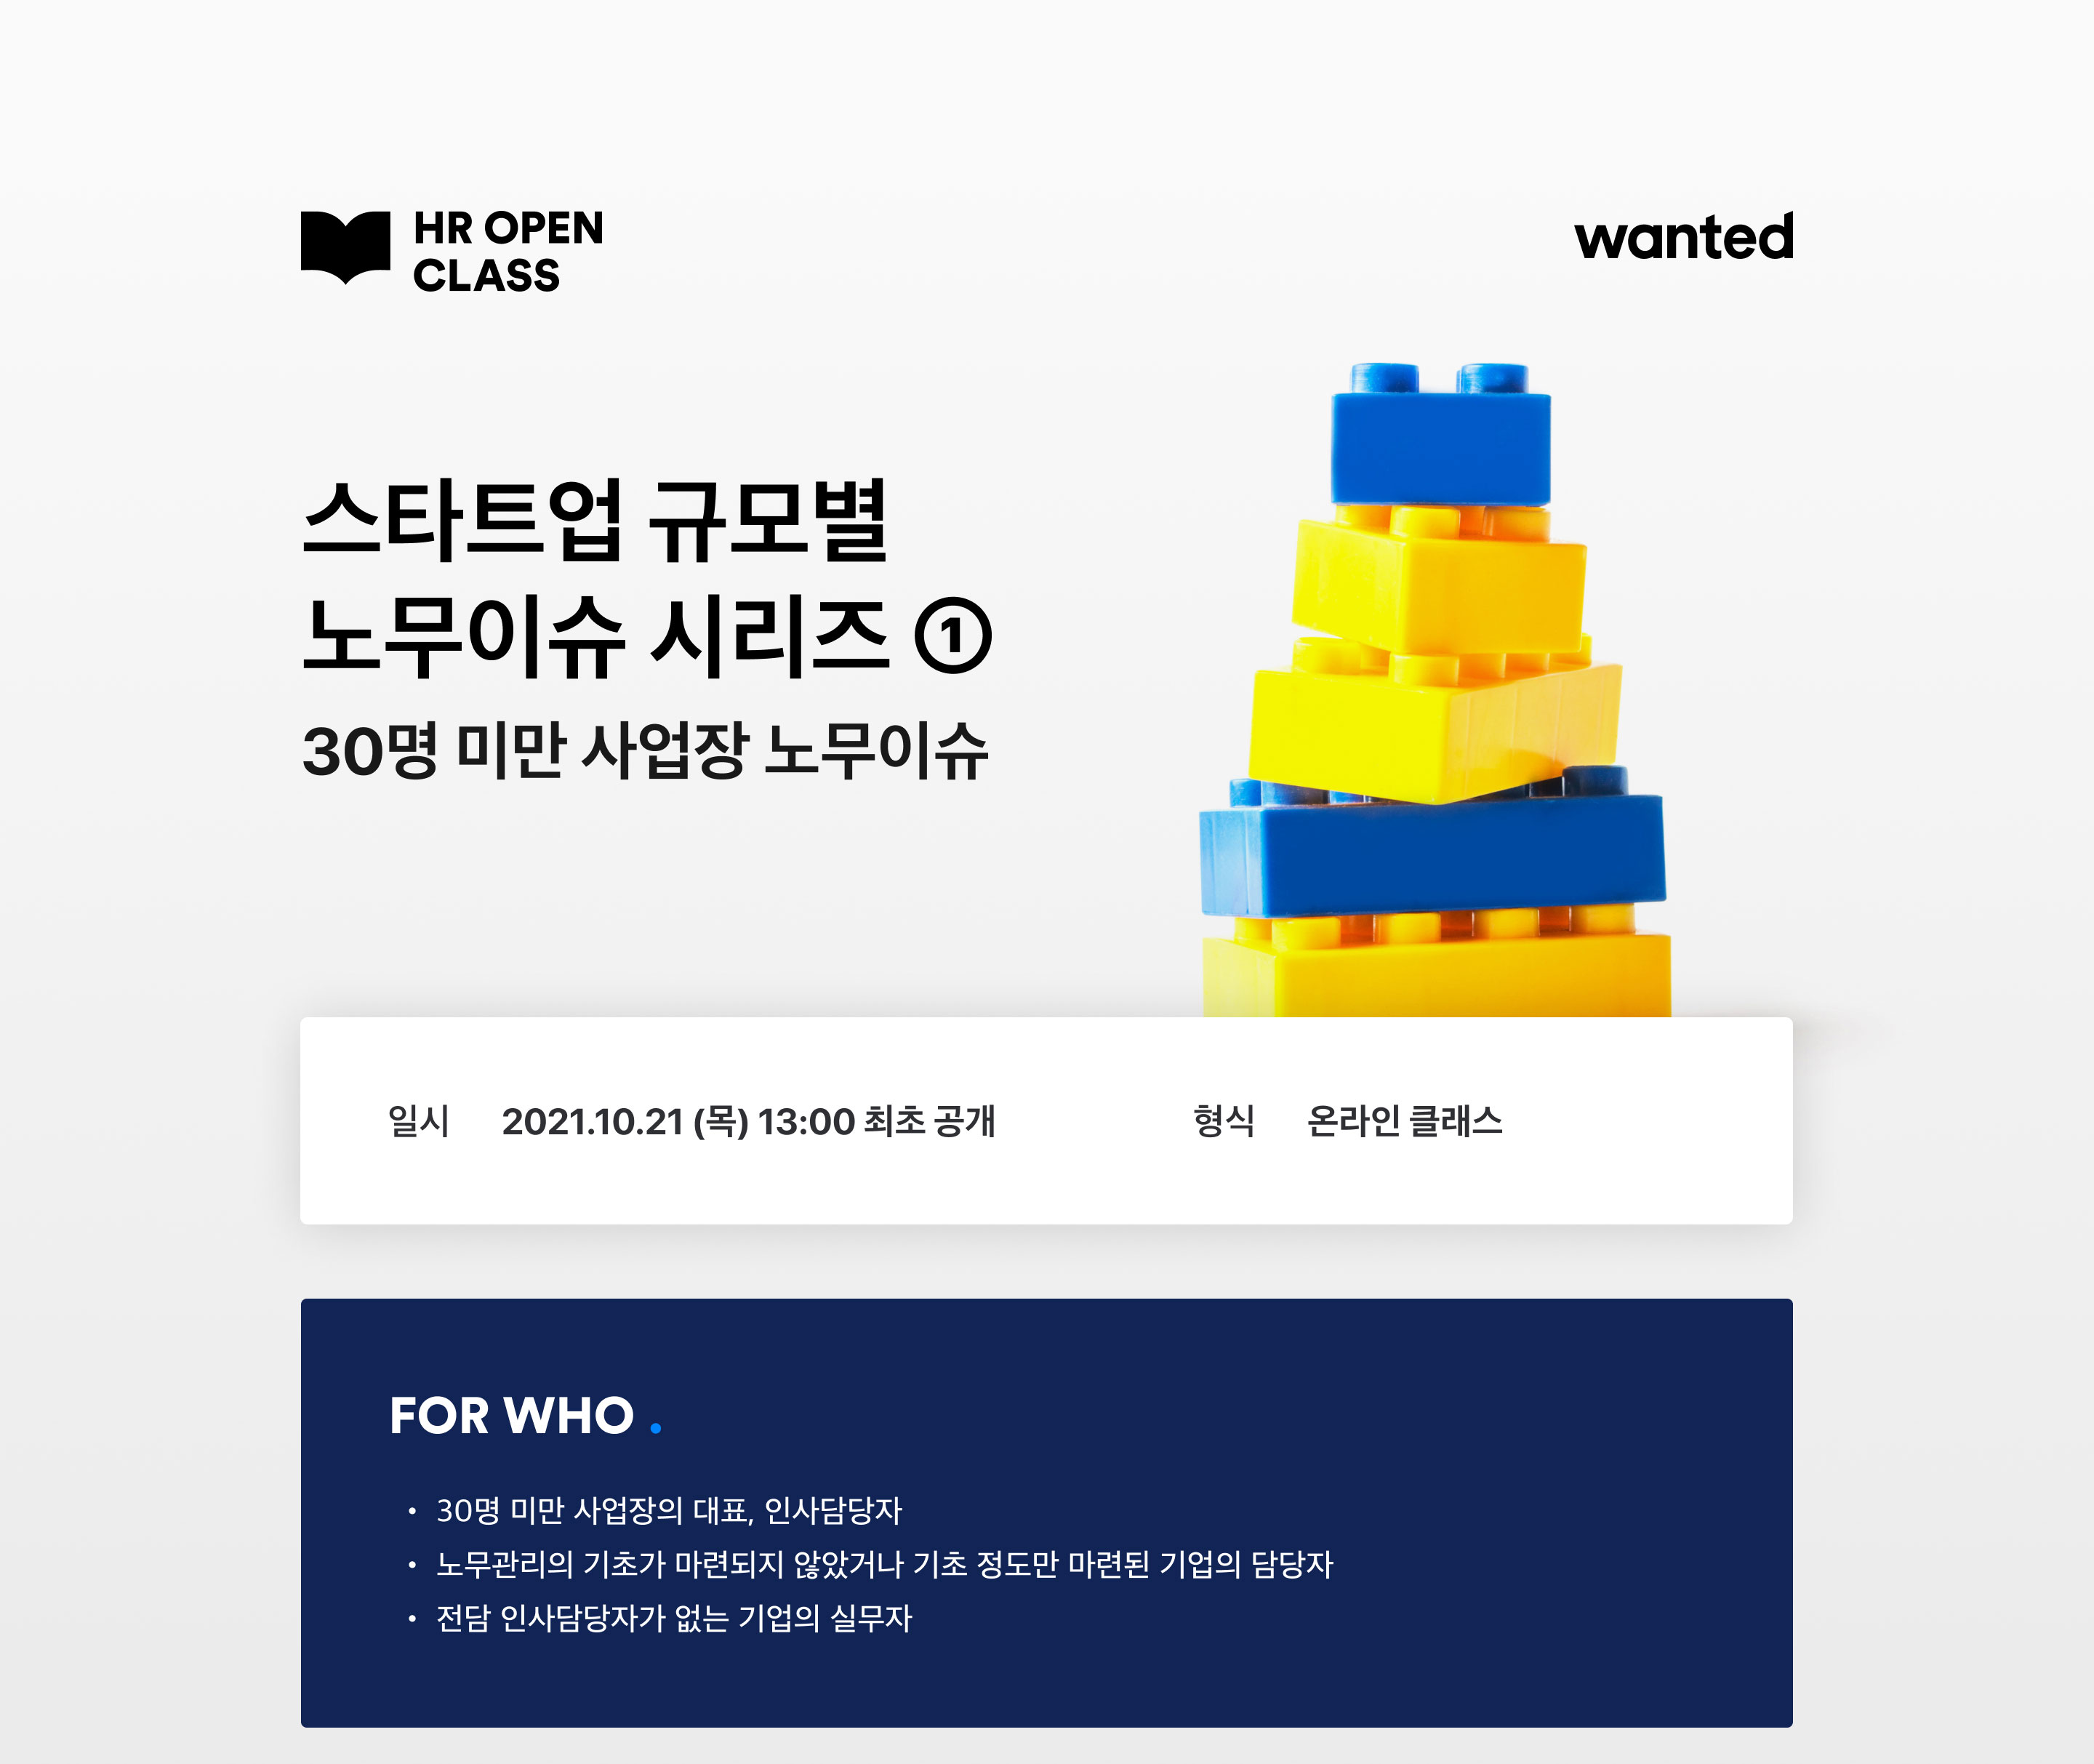 https://static.wanted.co.kr/images/events/1522/db3e6228.jpg